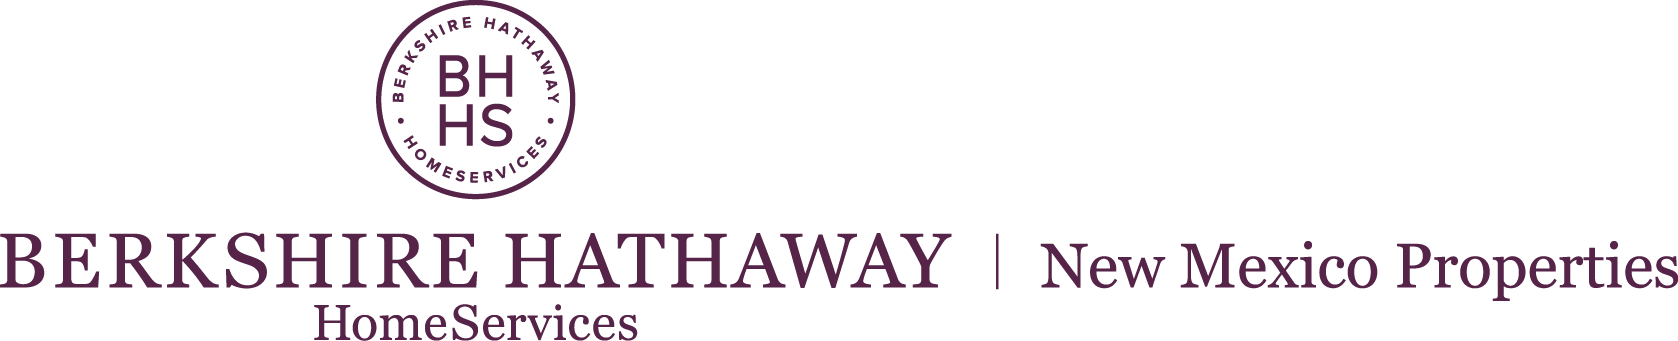 Berkshire Hathaway HomeServices New Mexico Properties